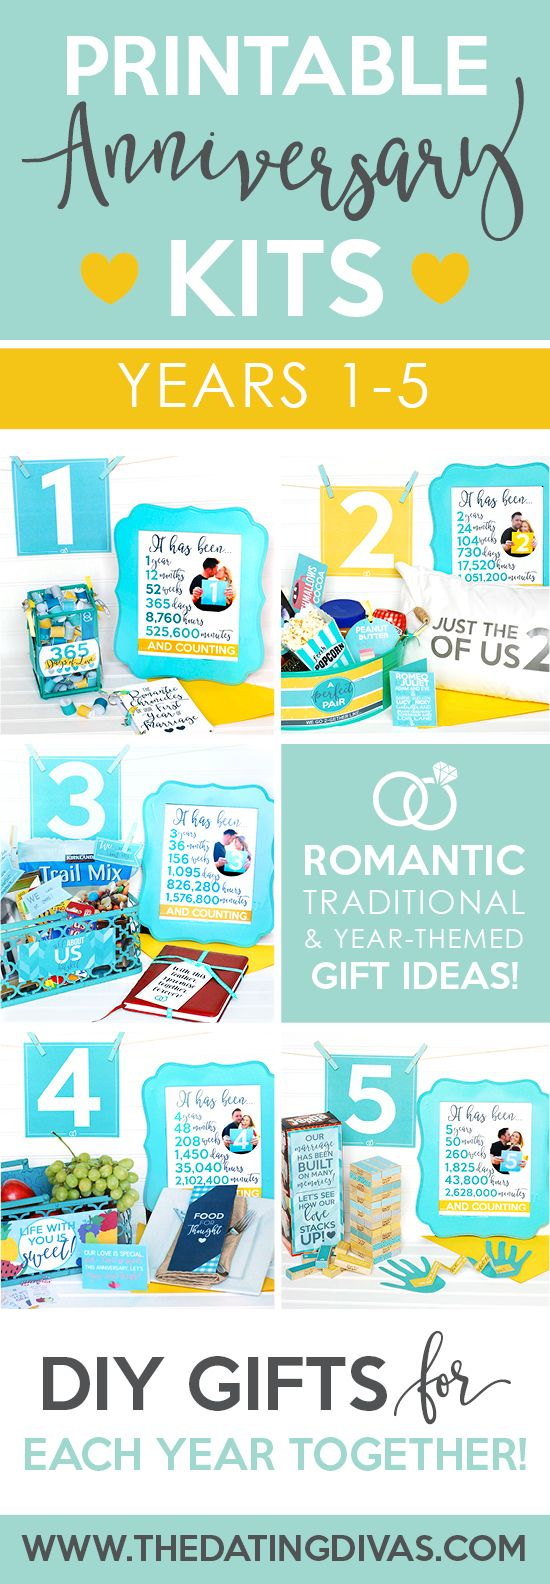 Finding the perfect gift to show your spouse just how much the past year has meant can be a challenge! Say no more because we have planned out your first FIVE anniversaries for you! We've provided you with 3 romantic and traditional gift ideas for each of your first five years of marriage. And of course, don't forget to download your FREE Anniversary Guide for the most comprehensive list of Anniversary Ideas EVA along with a Diva Store Promo Code!!